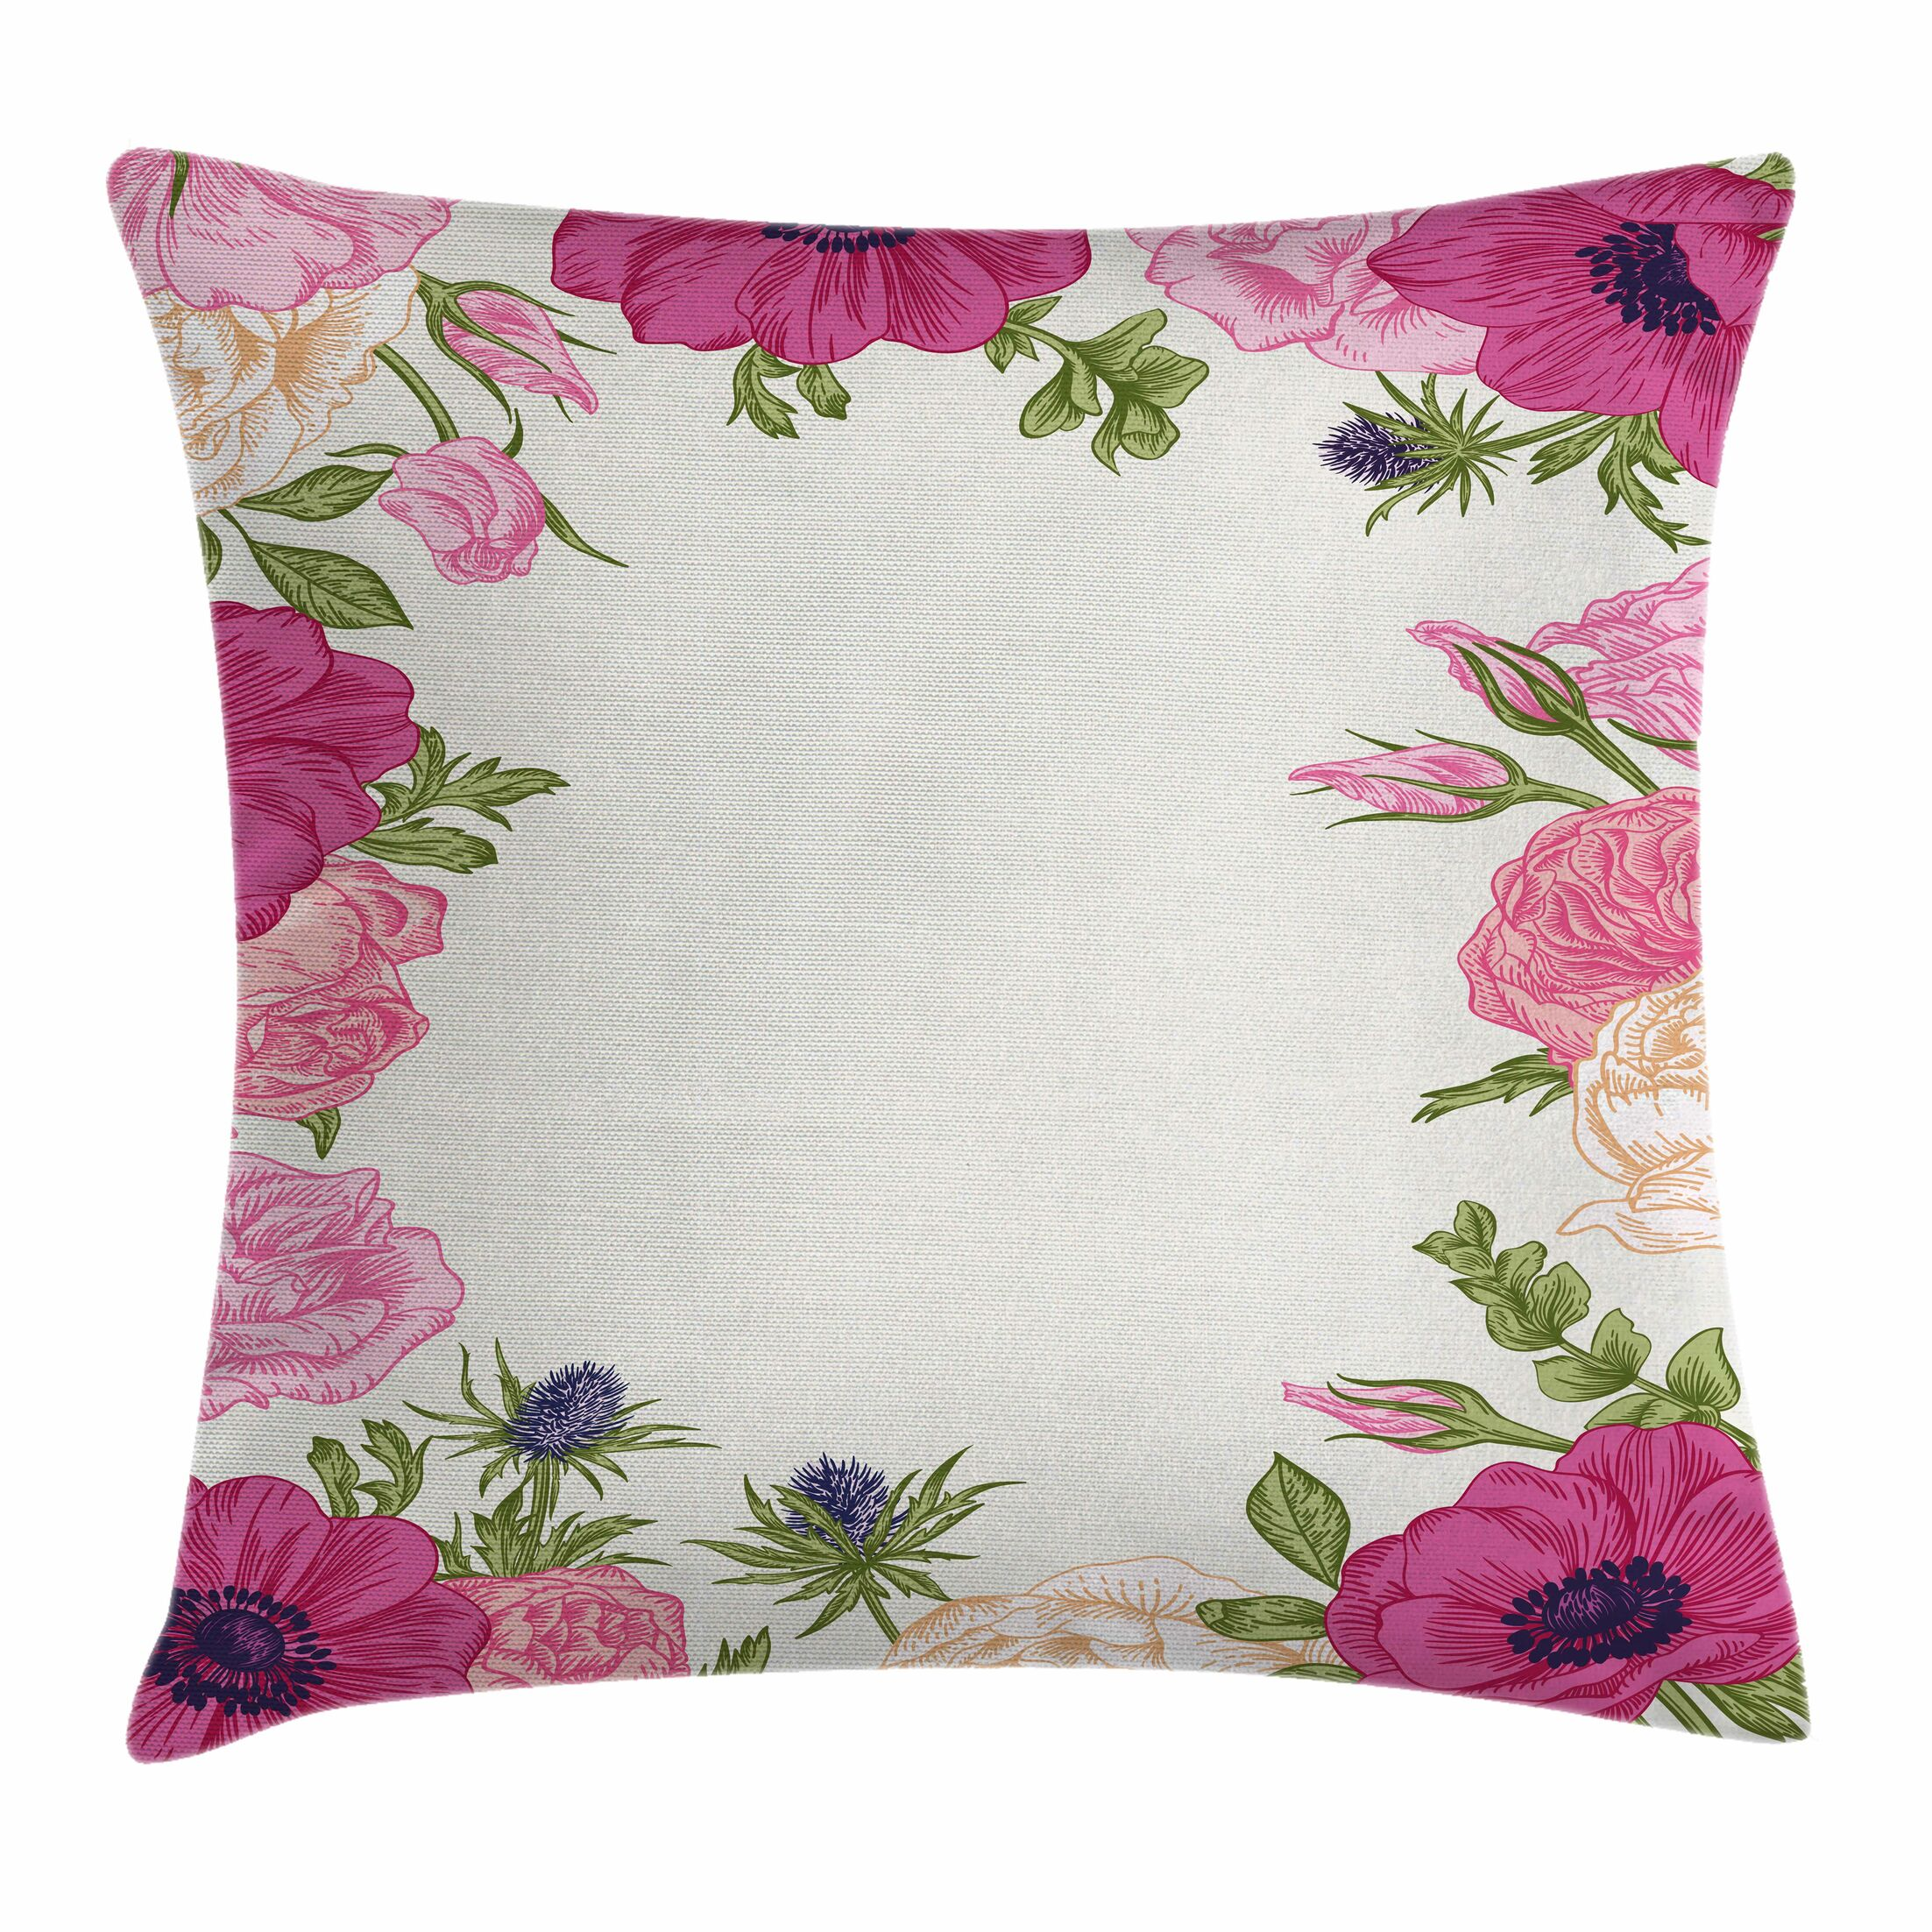 Anemone Spring Nature Square Cushion Pillow Cover Size: 24